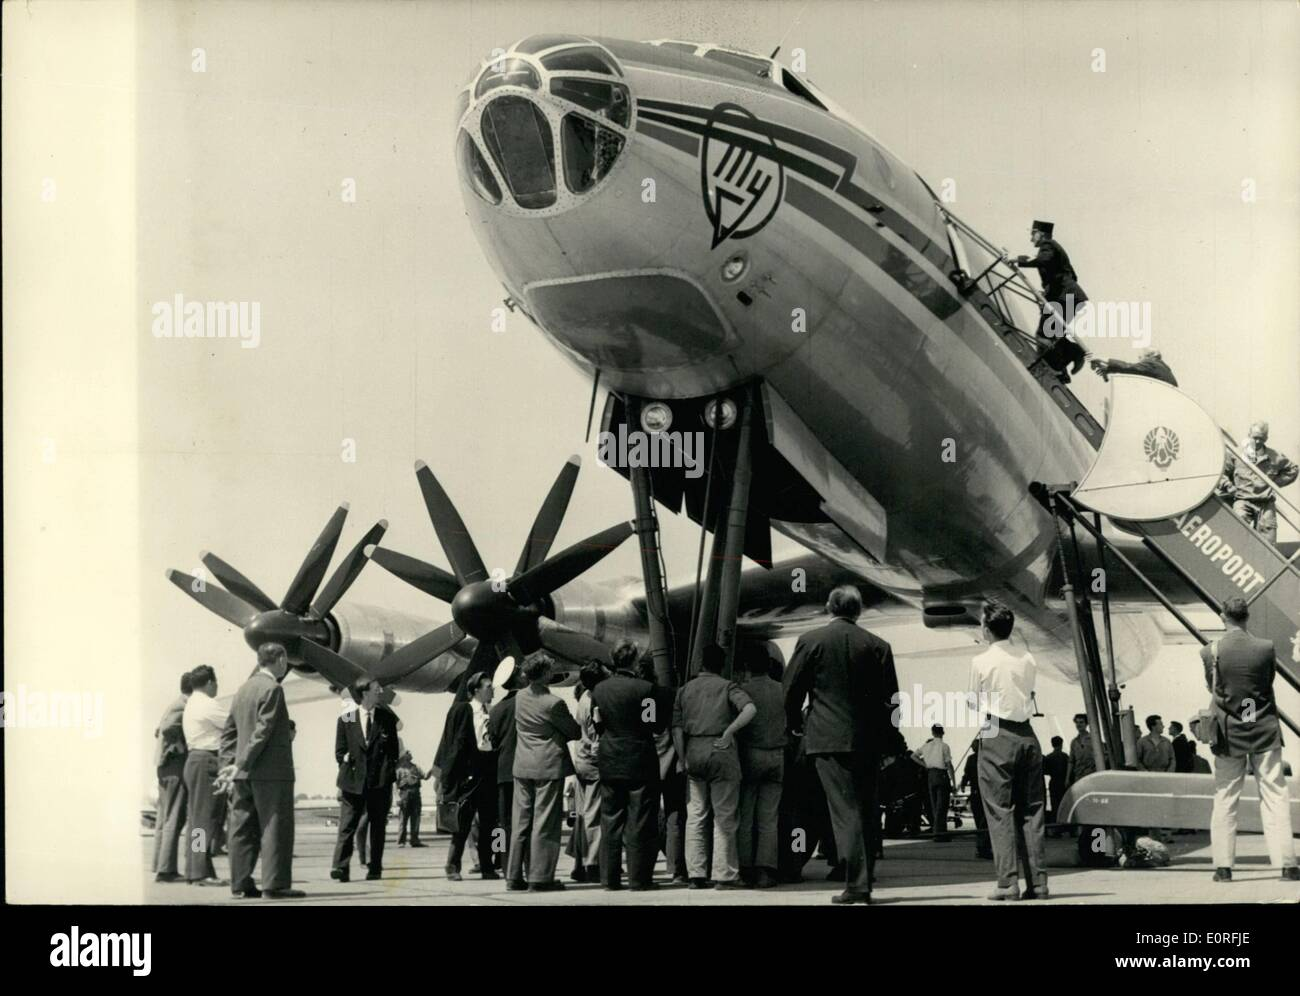 Jun. 06, 1959 - Paris International Air Show: A Civil Transport Plane the most important of the world, Russian plane TU 114 arrived in Le Bourget coming from Russia this morning. Realised by the Russian Ingeneer Andre ev, this turbo-prop model can carry 225 passengers - ''(Illegible)'' 800 to 850 km/hour. Photo Shows The TU 114 photographed at the Bourget airport this. - Stock Image